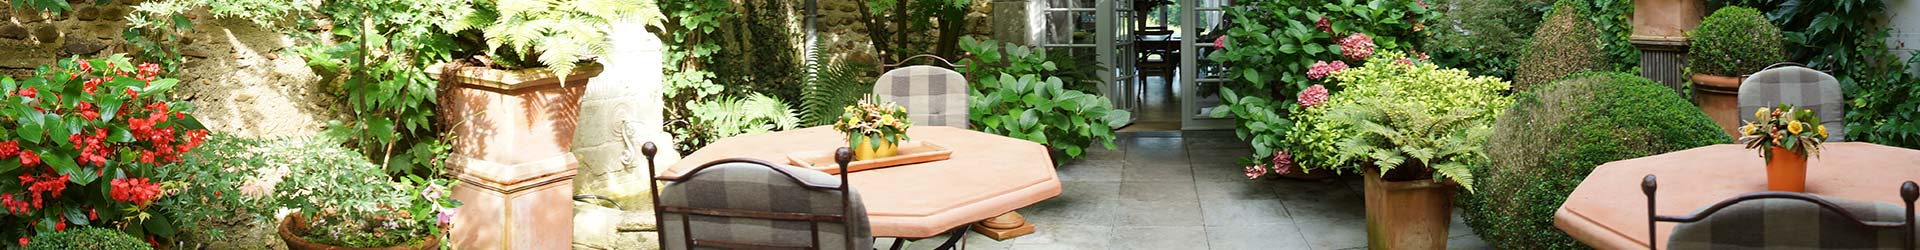 chambre-hote-patio-fleur-table